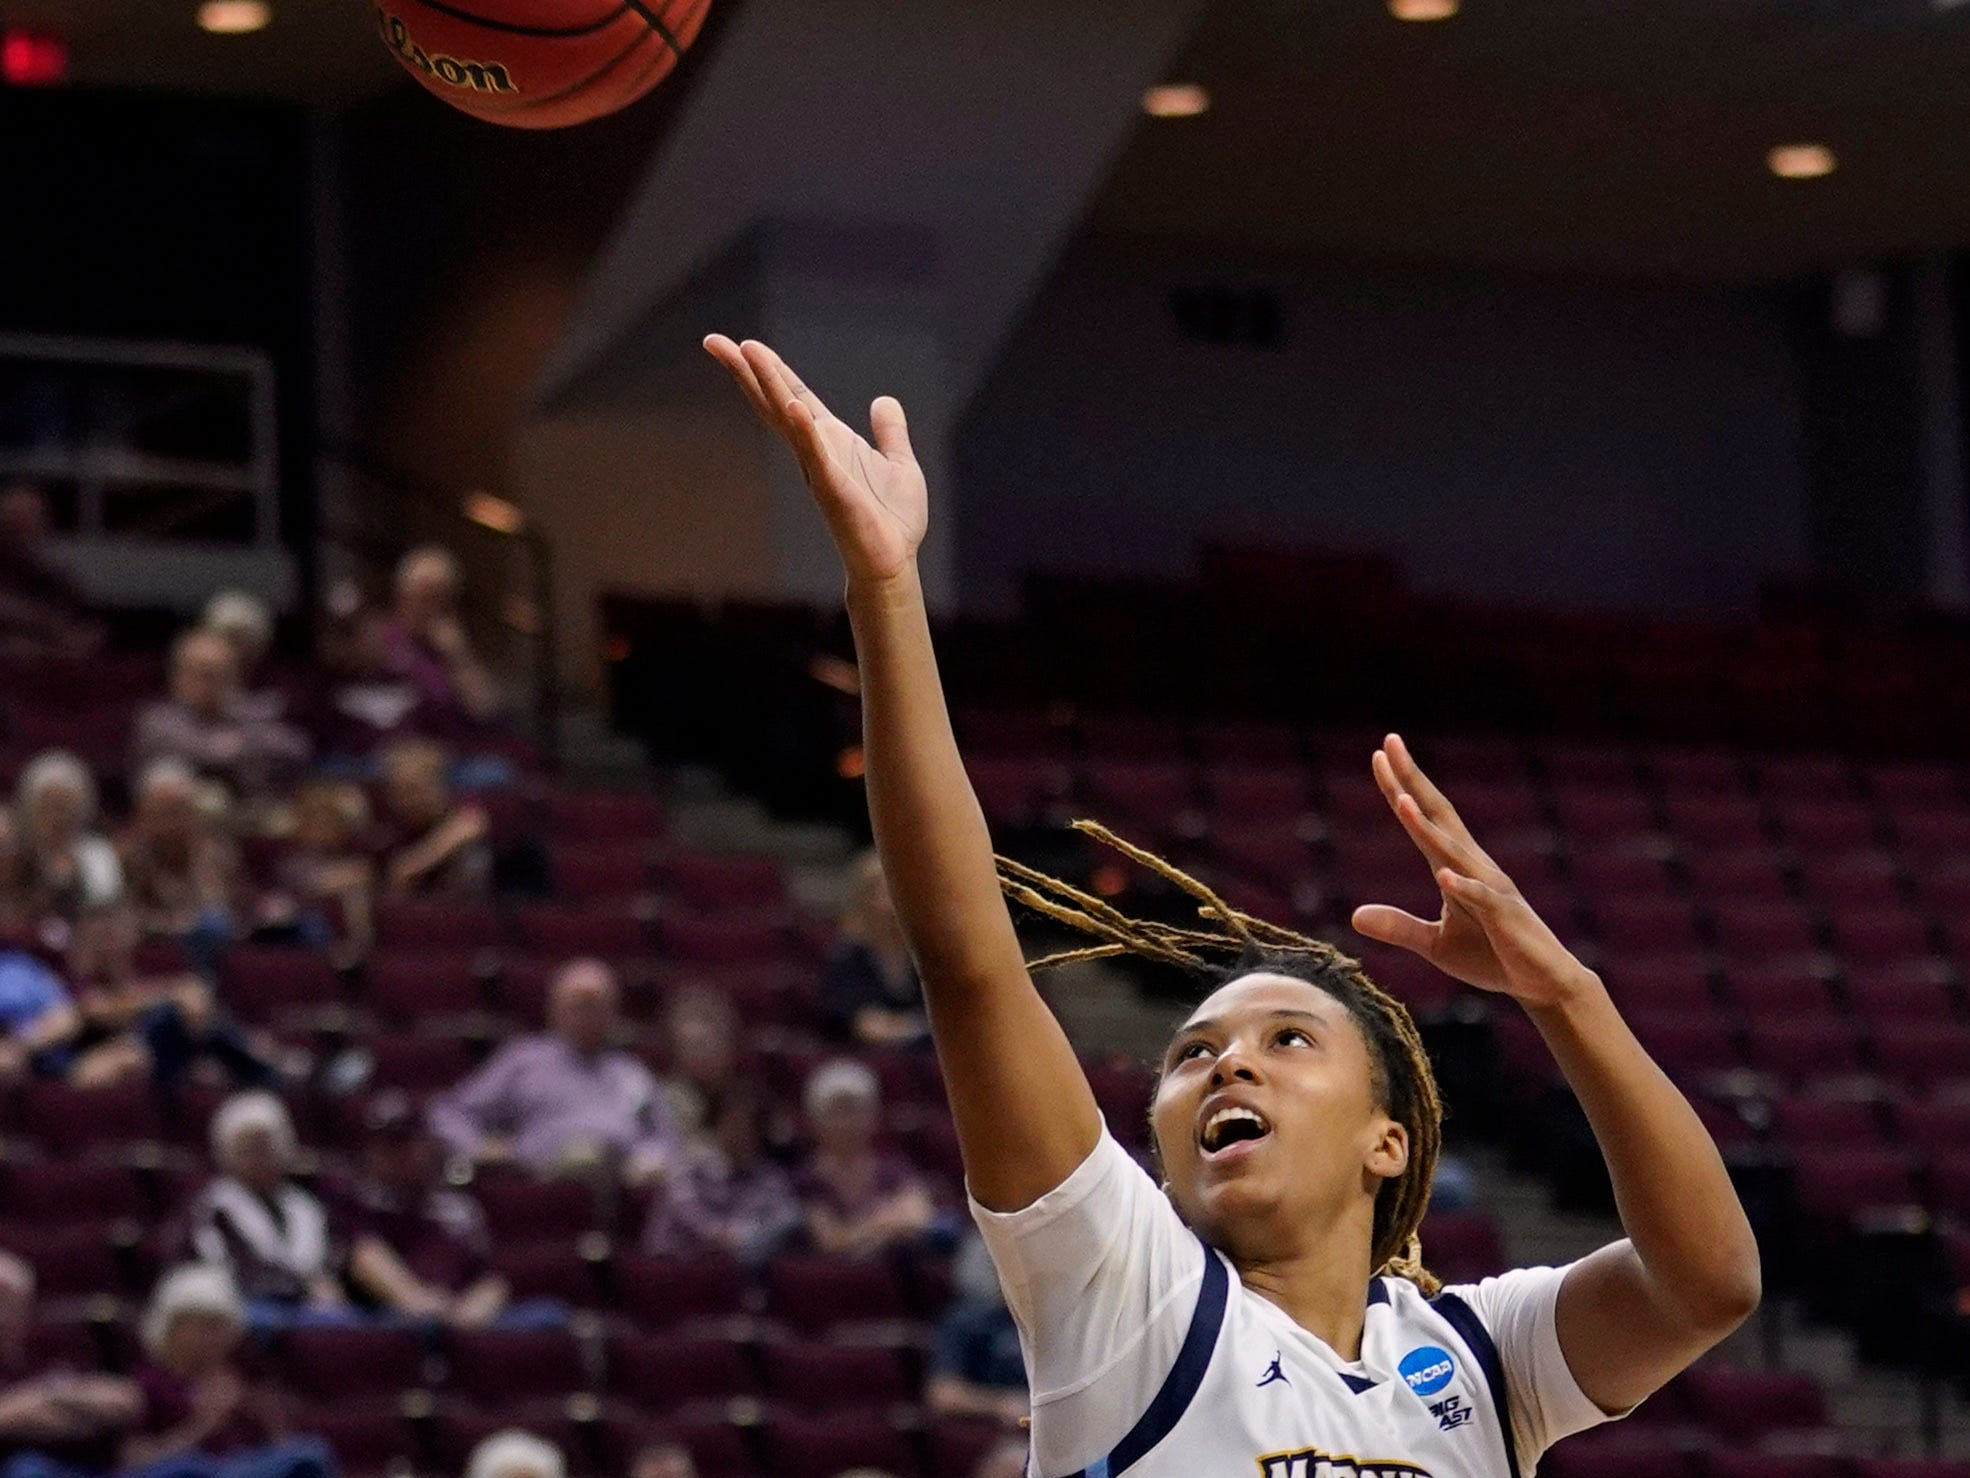 Marquette's Amani Wilborn goes up for a shot as Rice's Erica Ogwumike looks on during the first half.